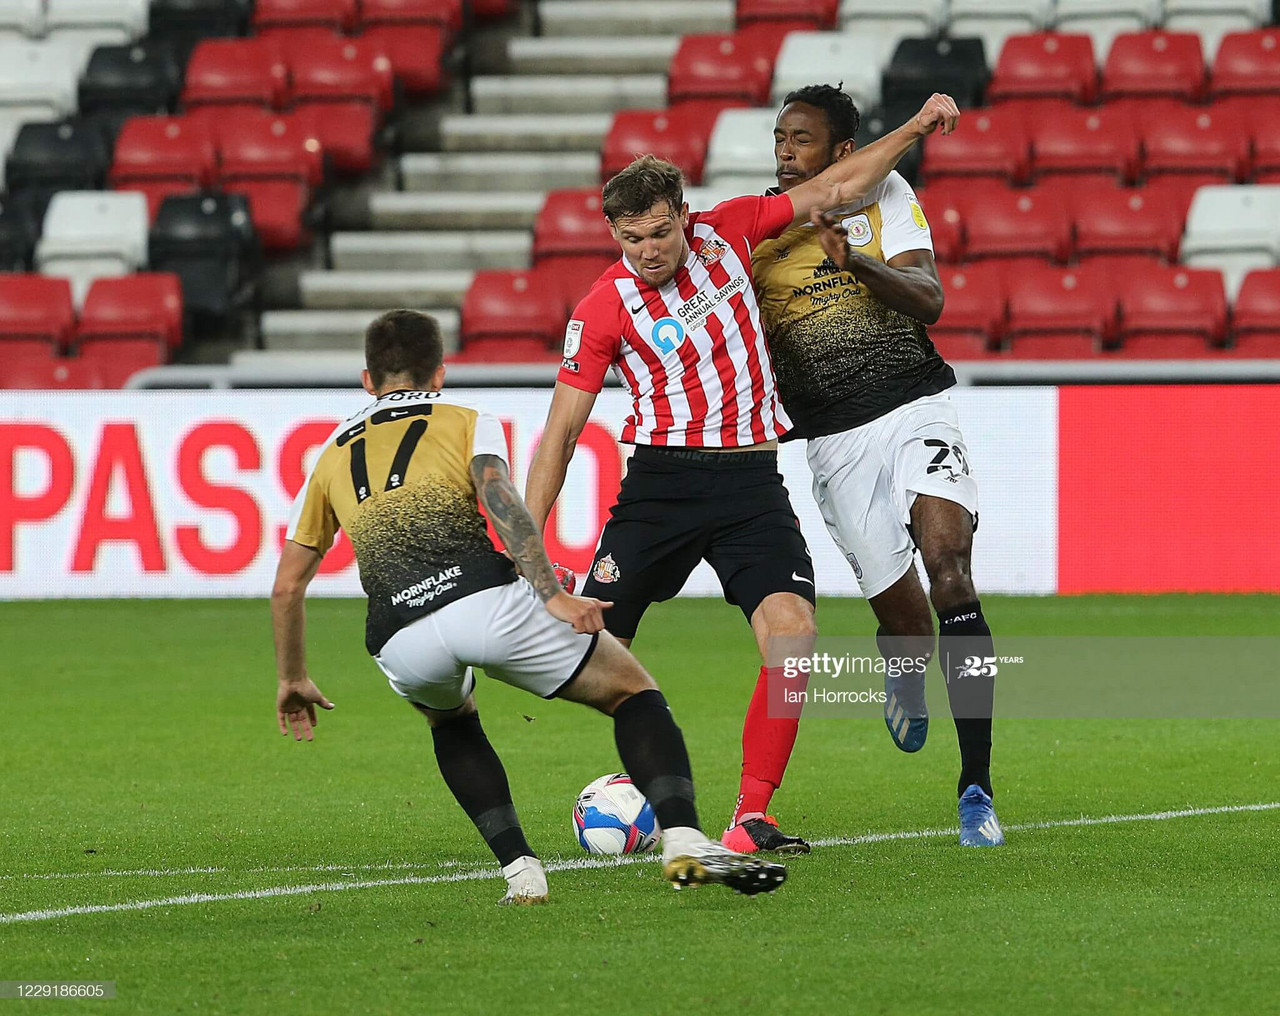 Charlie Wyke of Sunderland has a shot during the Sky Bet League One match between Sunderland and Crewe Alexandra at Stadium of Light on October 20, 2020 in Sunderland, England. (Photo by Ian Horrocks/Getty Images)